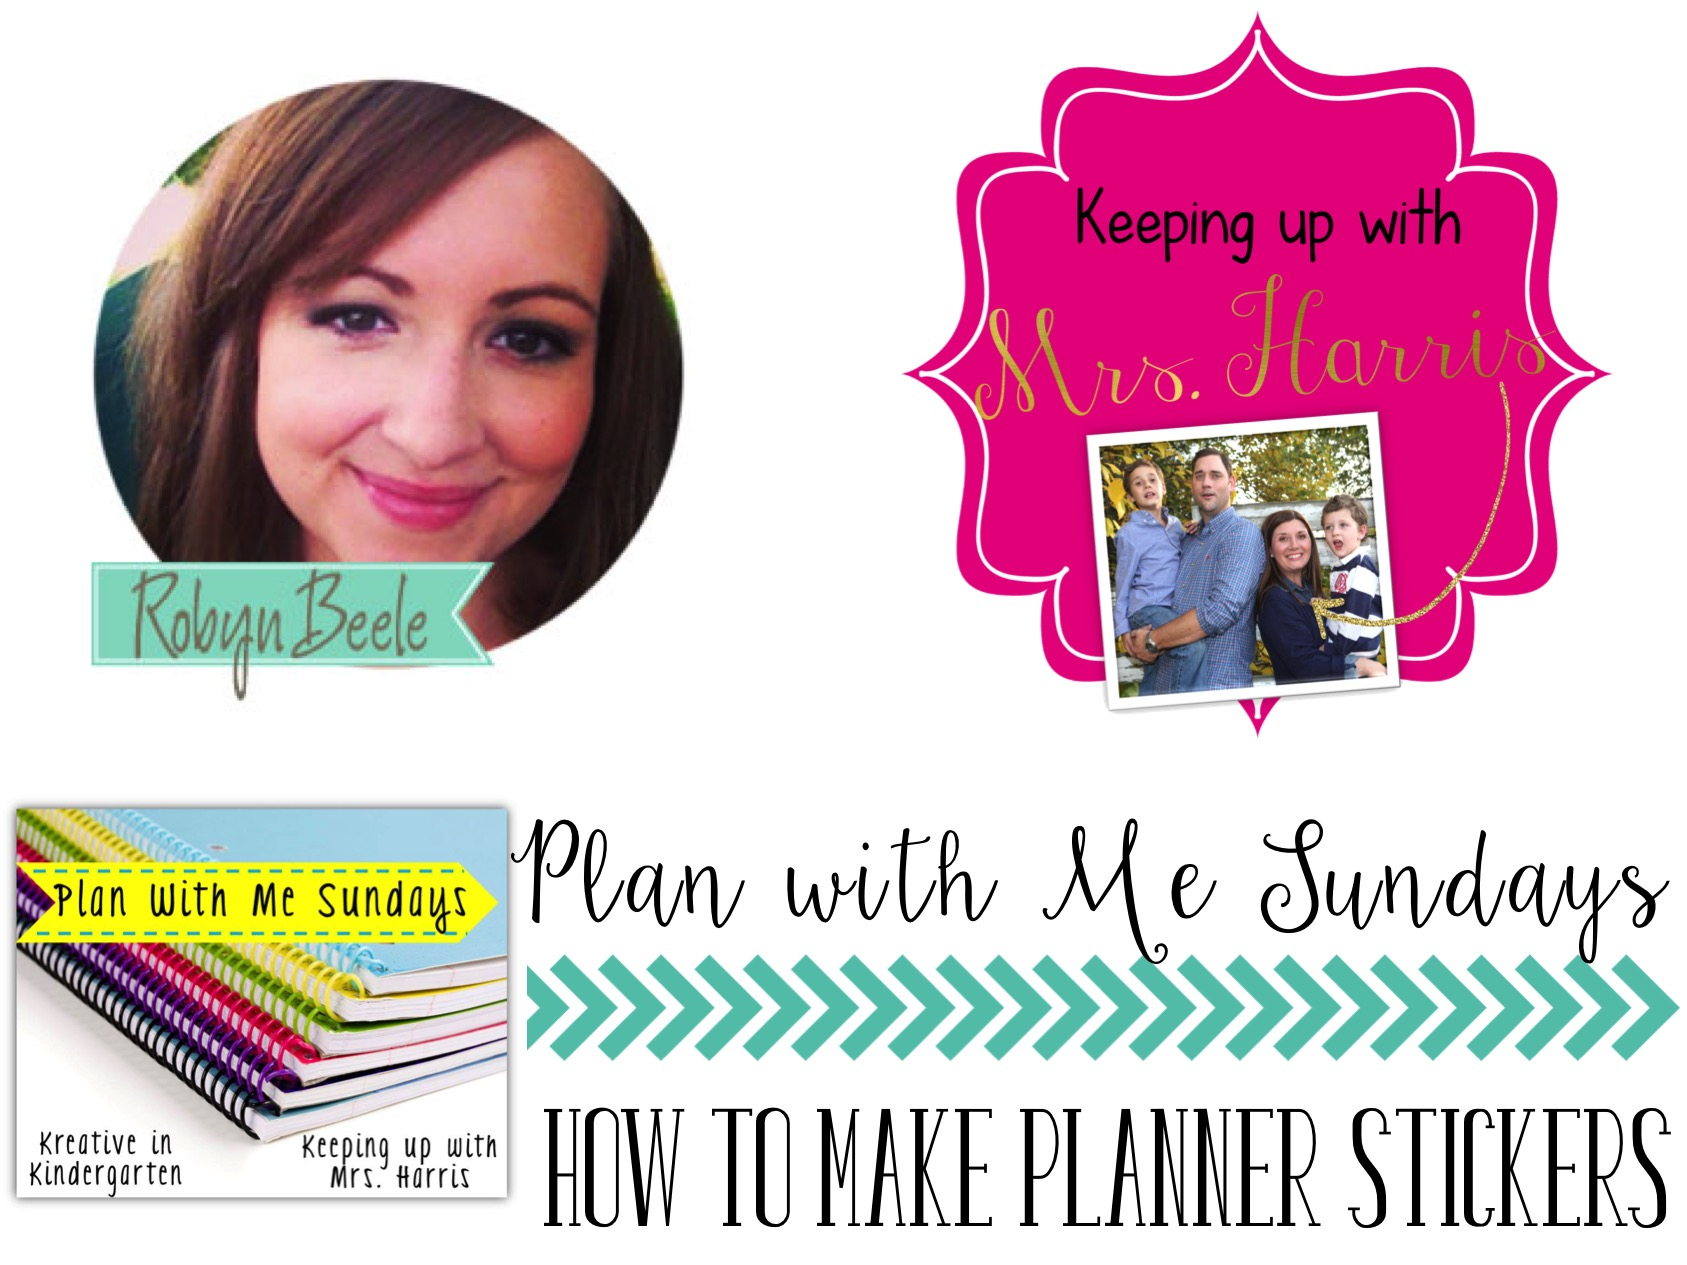 Want to know how to make planner stickers? Take a look! We can have your planner printables ready for your Erin Condren planner. Your planner organization will be envied far and wide!